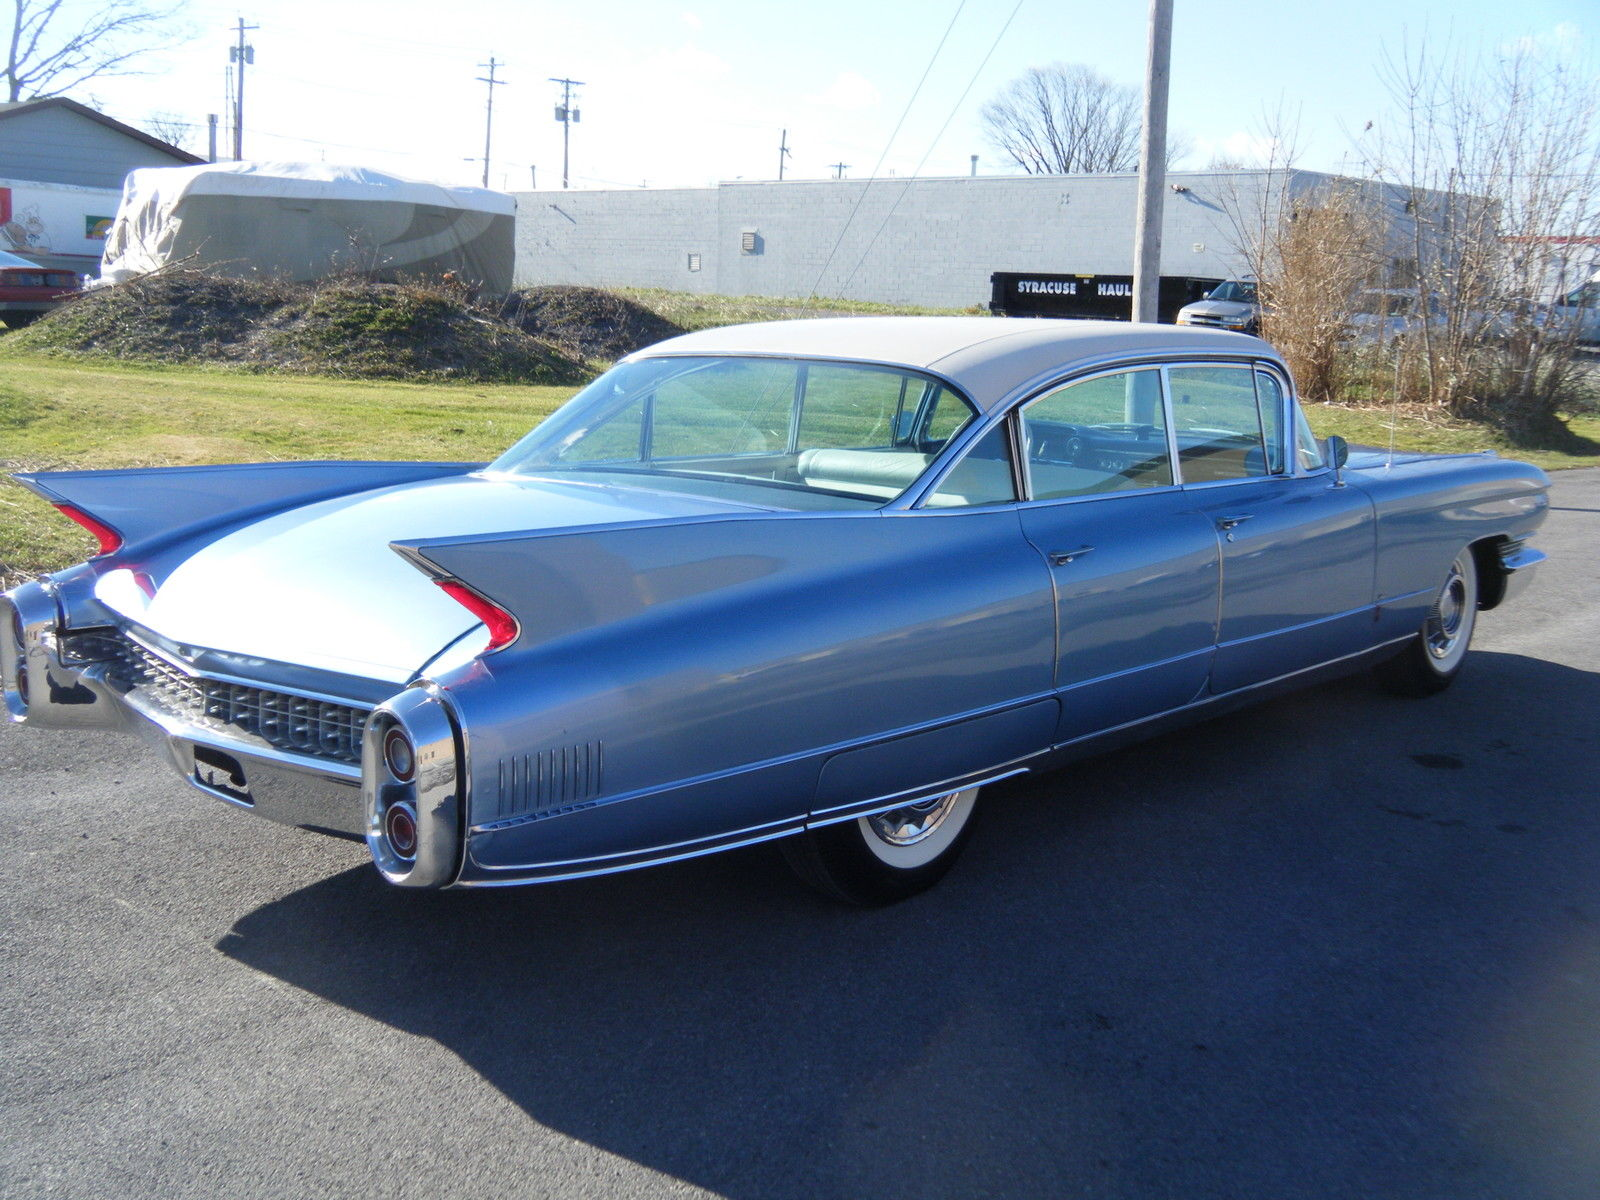 Cadillac Fleetwood For Sale >> 1960 Cadillac Fleetwood Rare Special Order! 1951,1959 listed & Oldsmobile also!